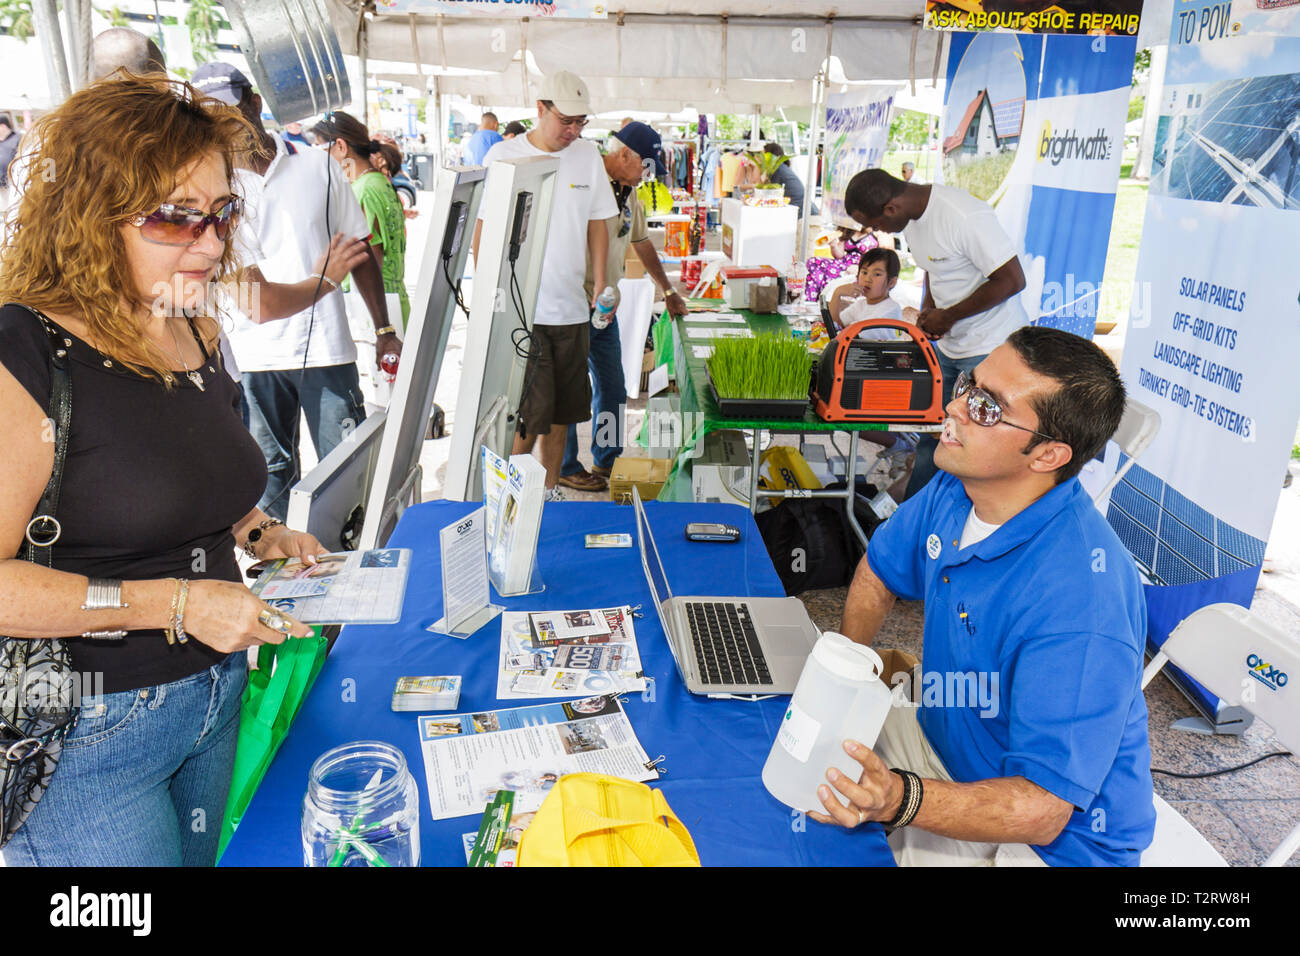 Miami Florida Bayfront Park Miami Goin' Green eco-friendly Earth Day celebration community fair green event sustainable lifestyl - Stock Image